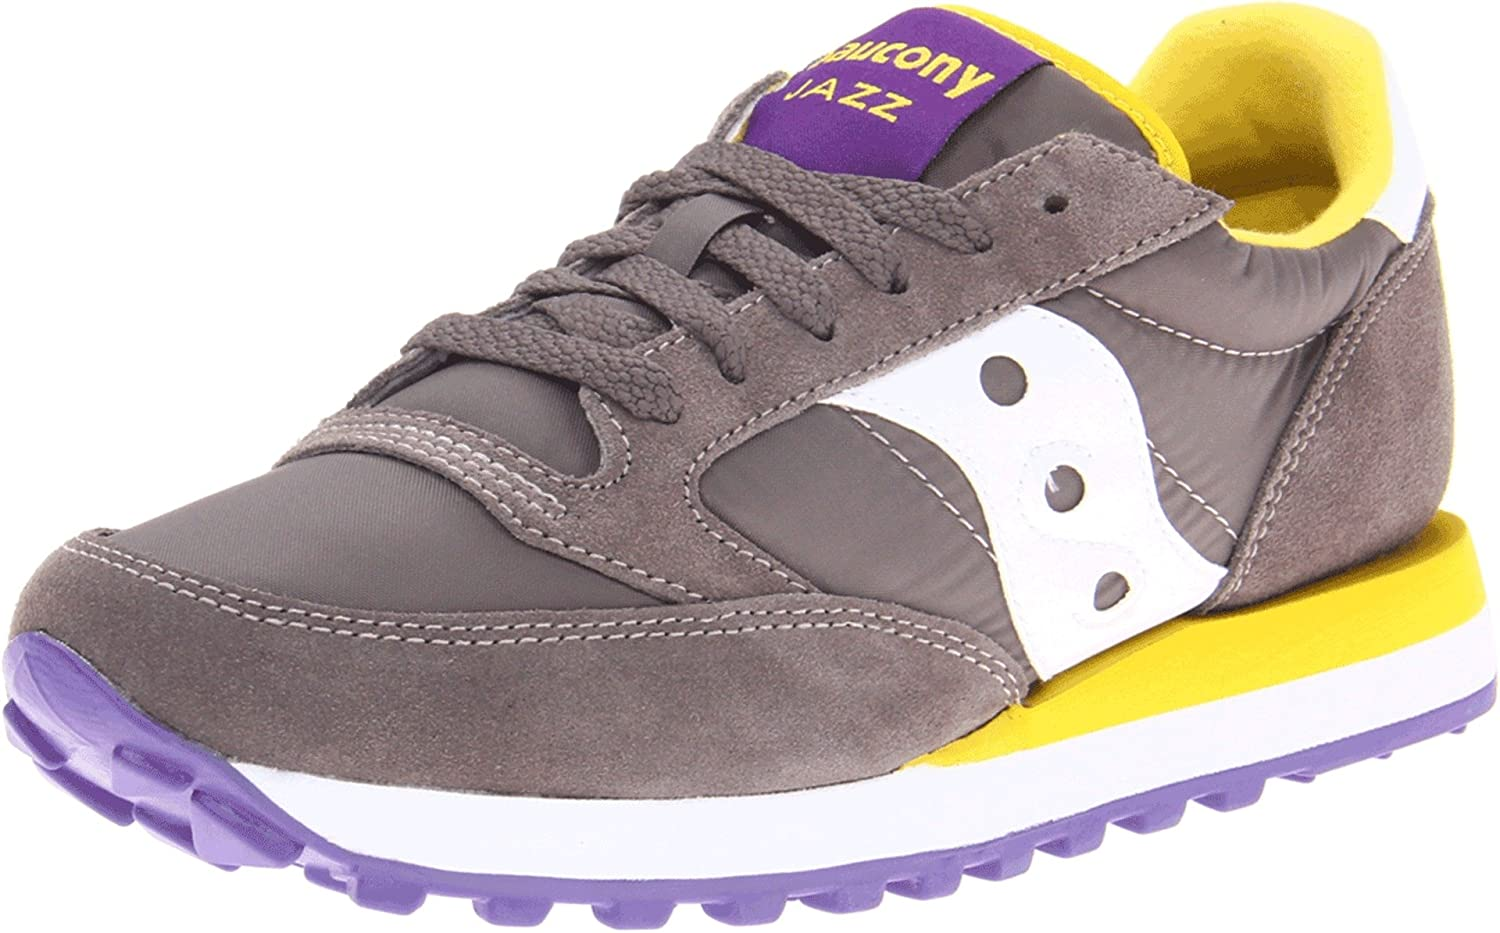 Saucony Originals Women's Jazz Original Sneaker B0083LPSF0 5.5 M US|Charcoal/Yellow/Purple